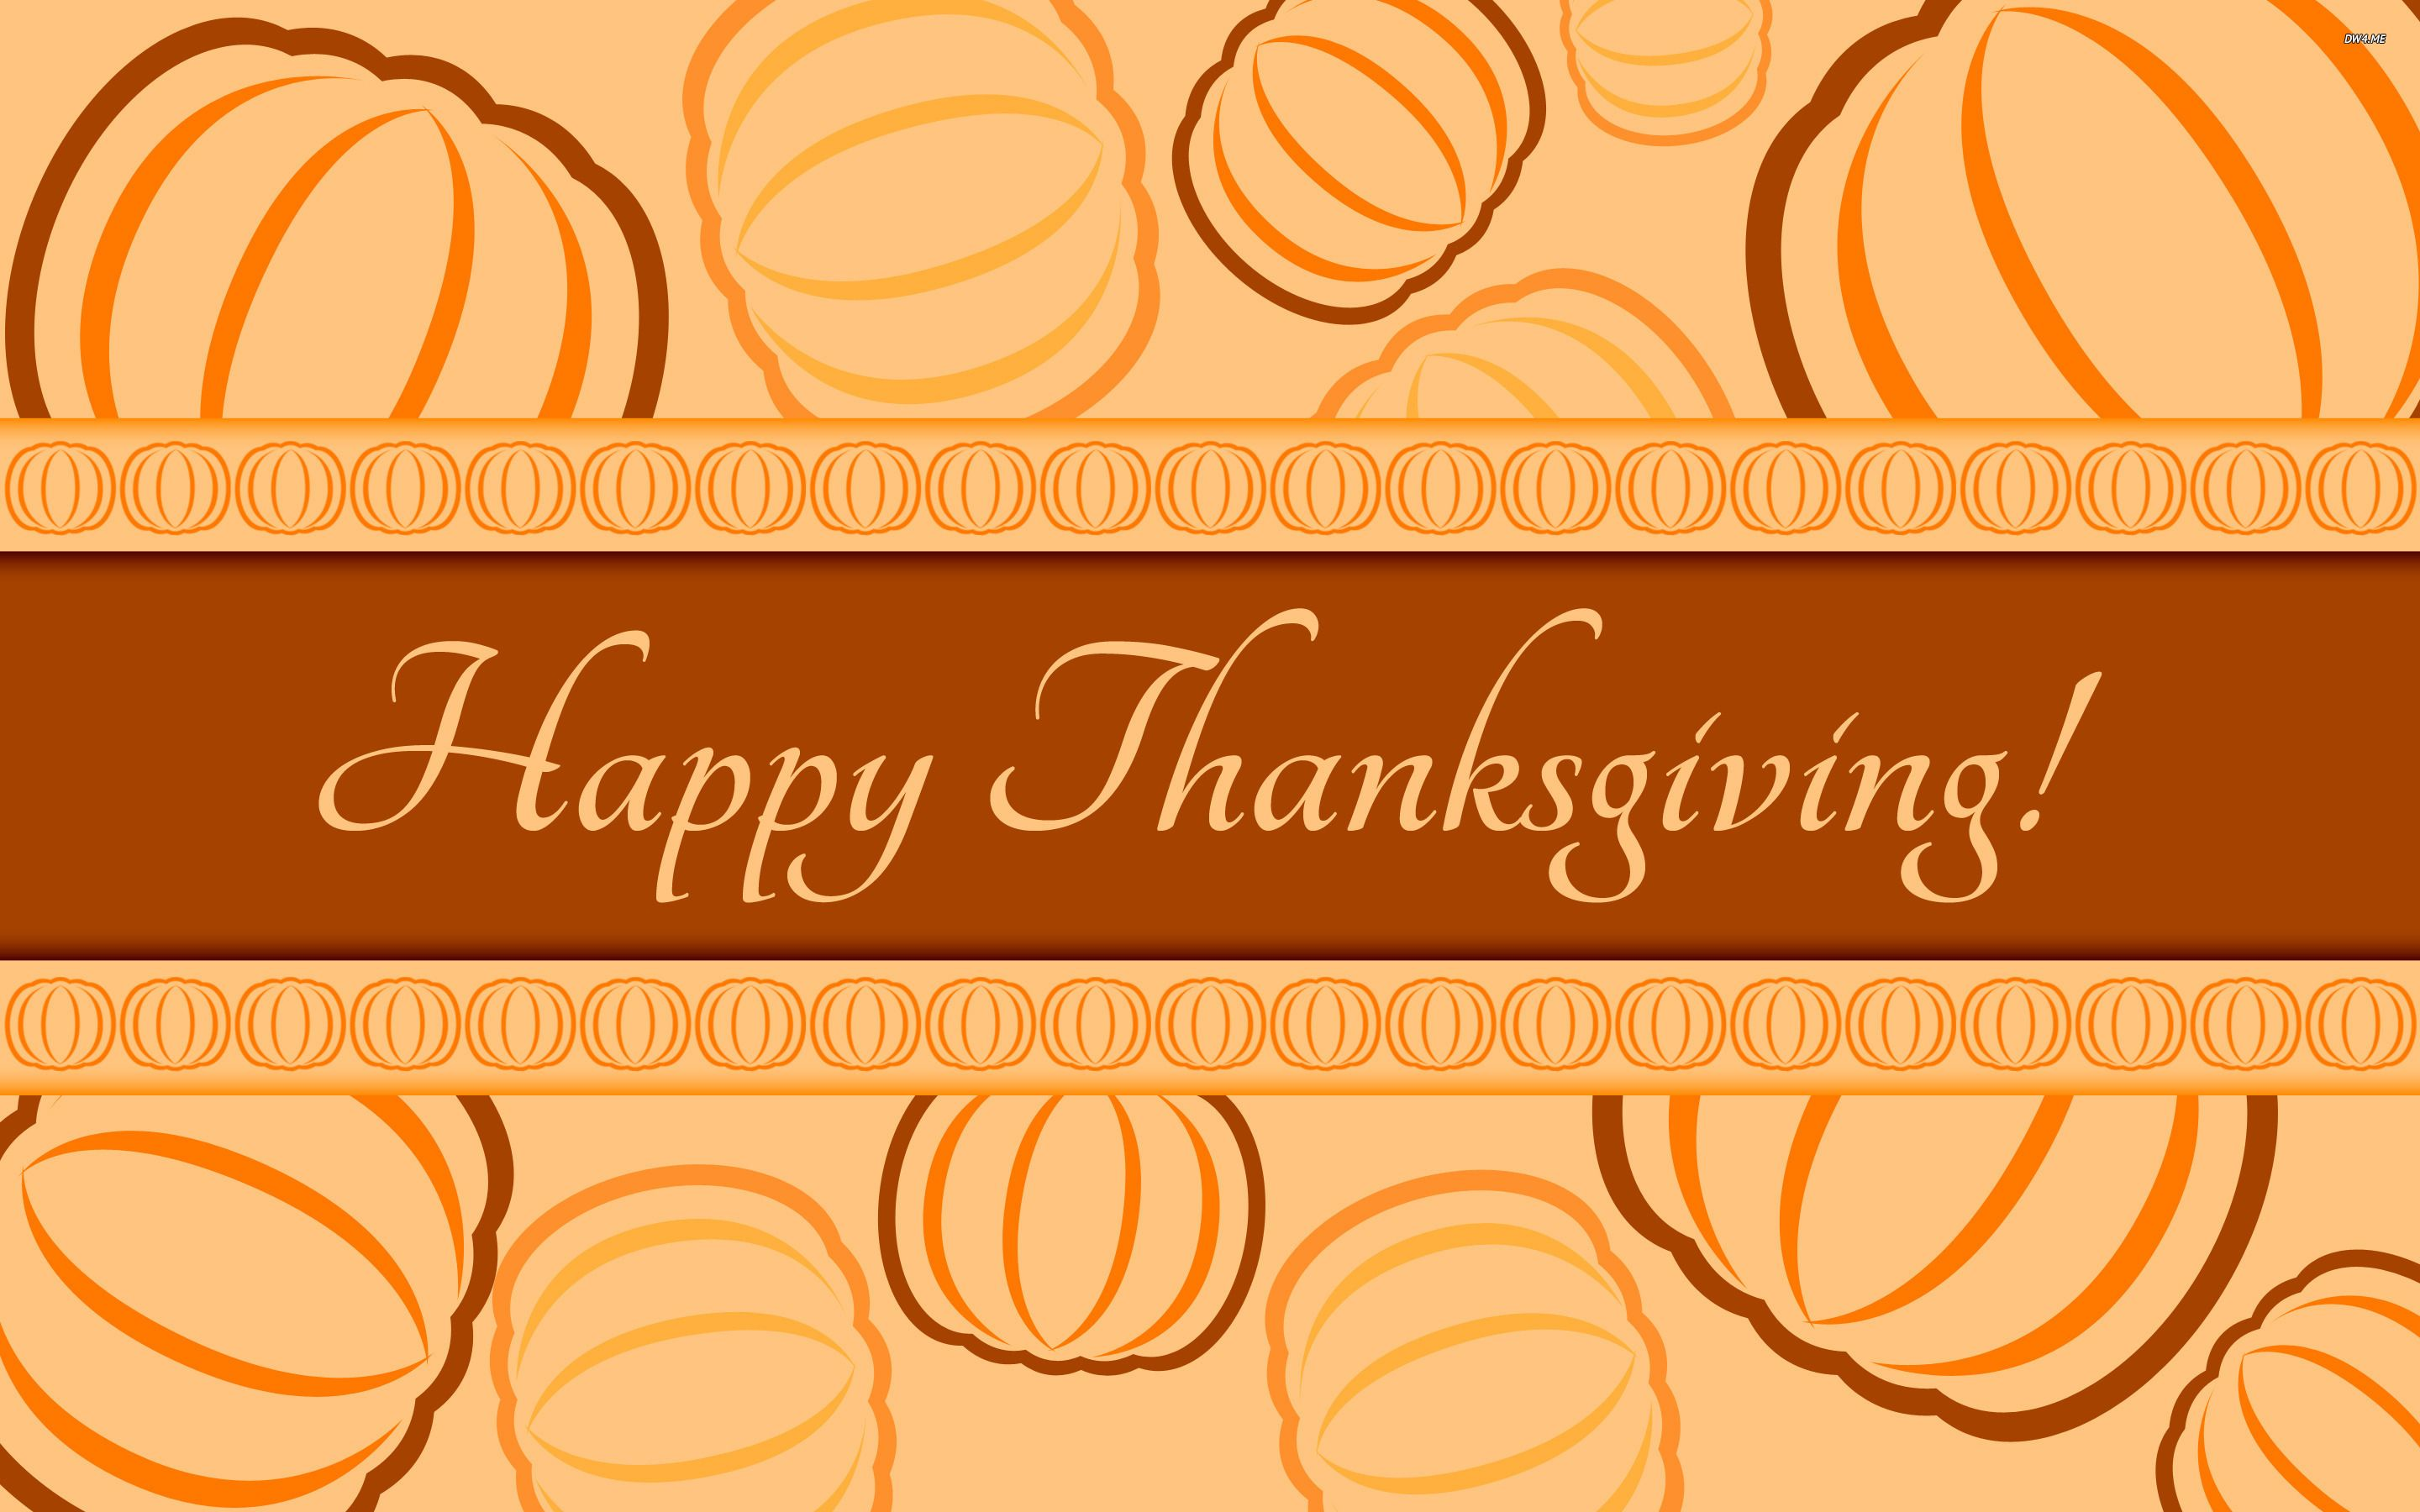 Happy thanksgiving wallpaper wallpapers pinterest holiday desktop wallpaper pumpkin wallpaper thanksgiving wallpaper holidays no happy thanksgiving day thanksgiving greetings kristyandbryce Choice Image